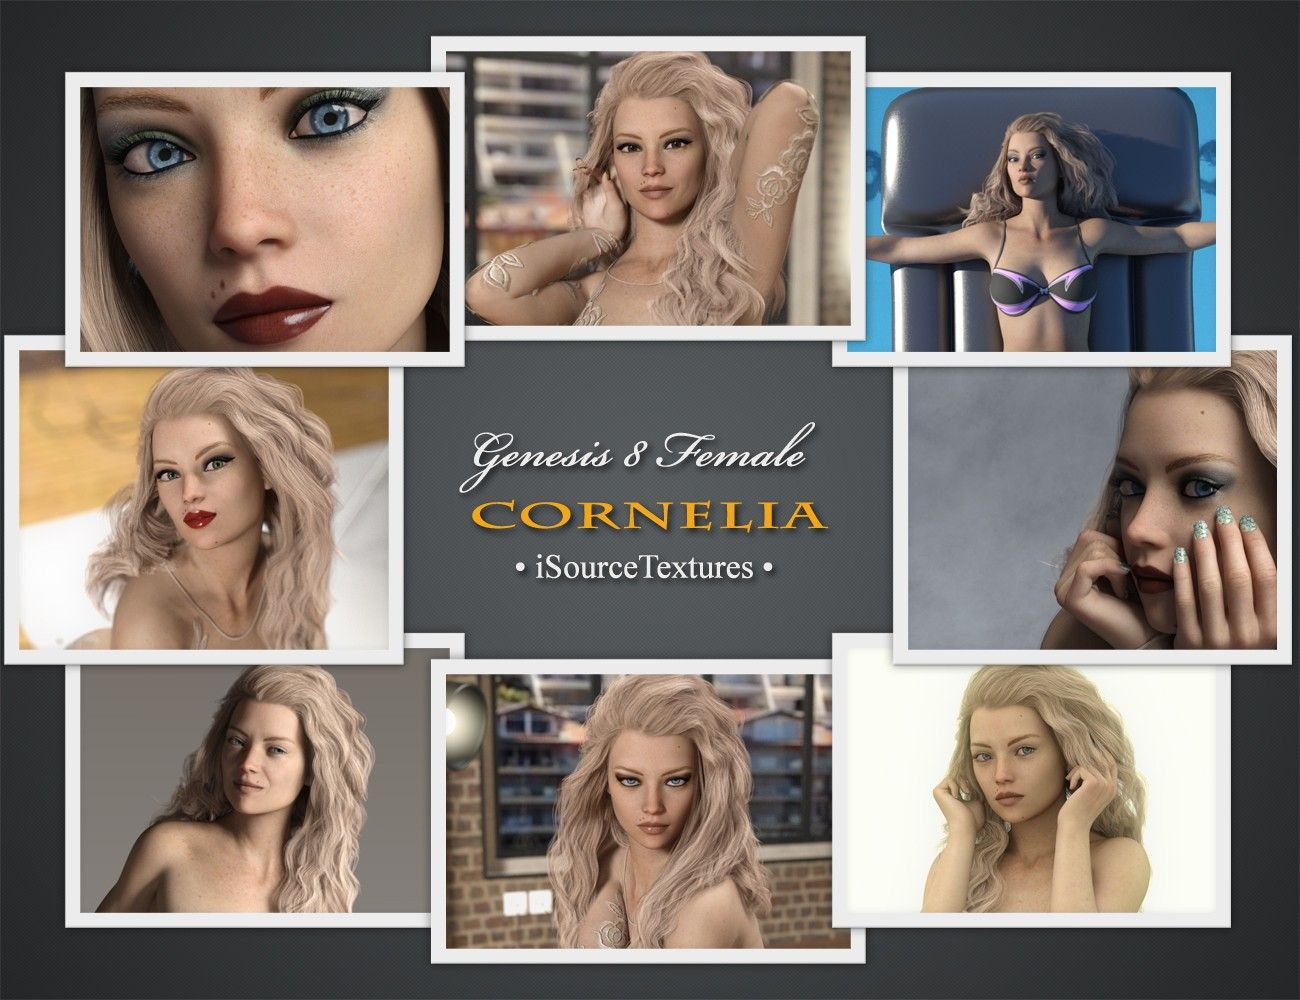 Cornelia For Genesis 8 Female | 3D Models and 3D Software by Daz 3D